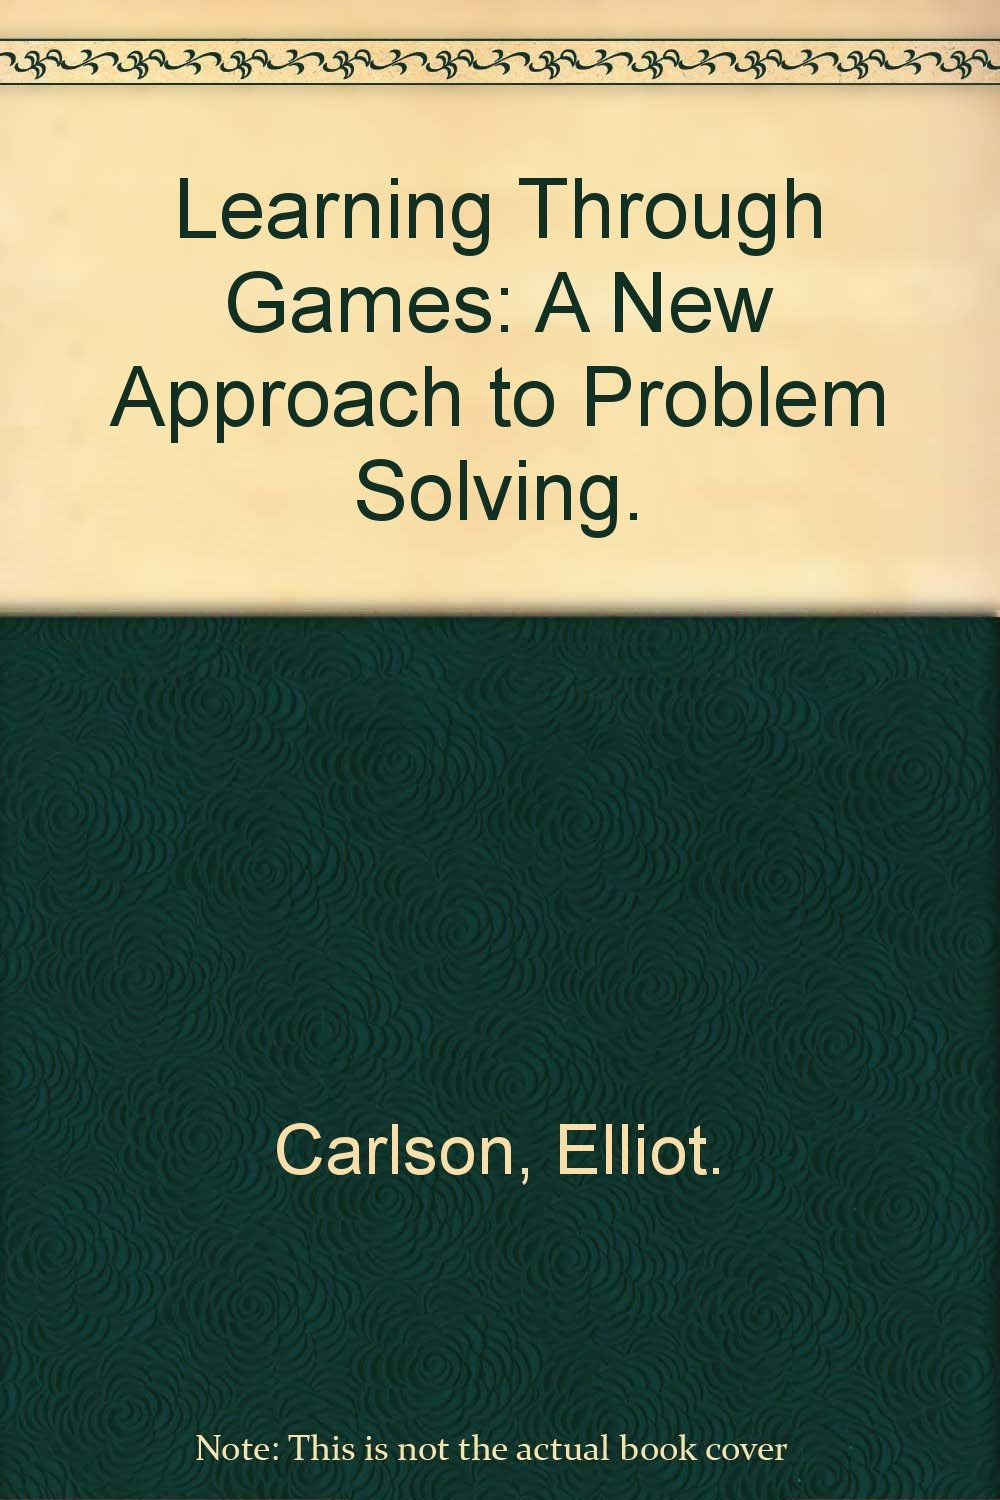 Learning Through Games: A New Approach to Problem Solving., Carlson, Elliot.